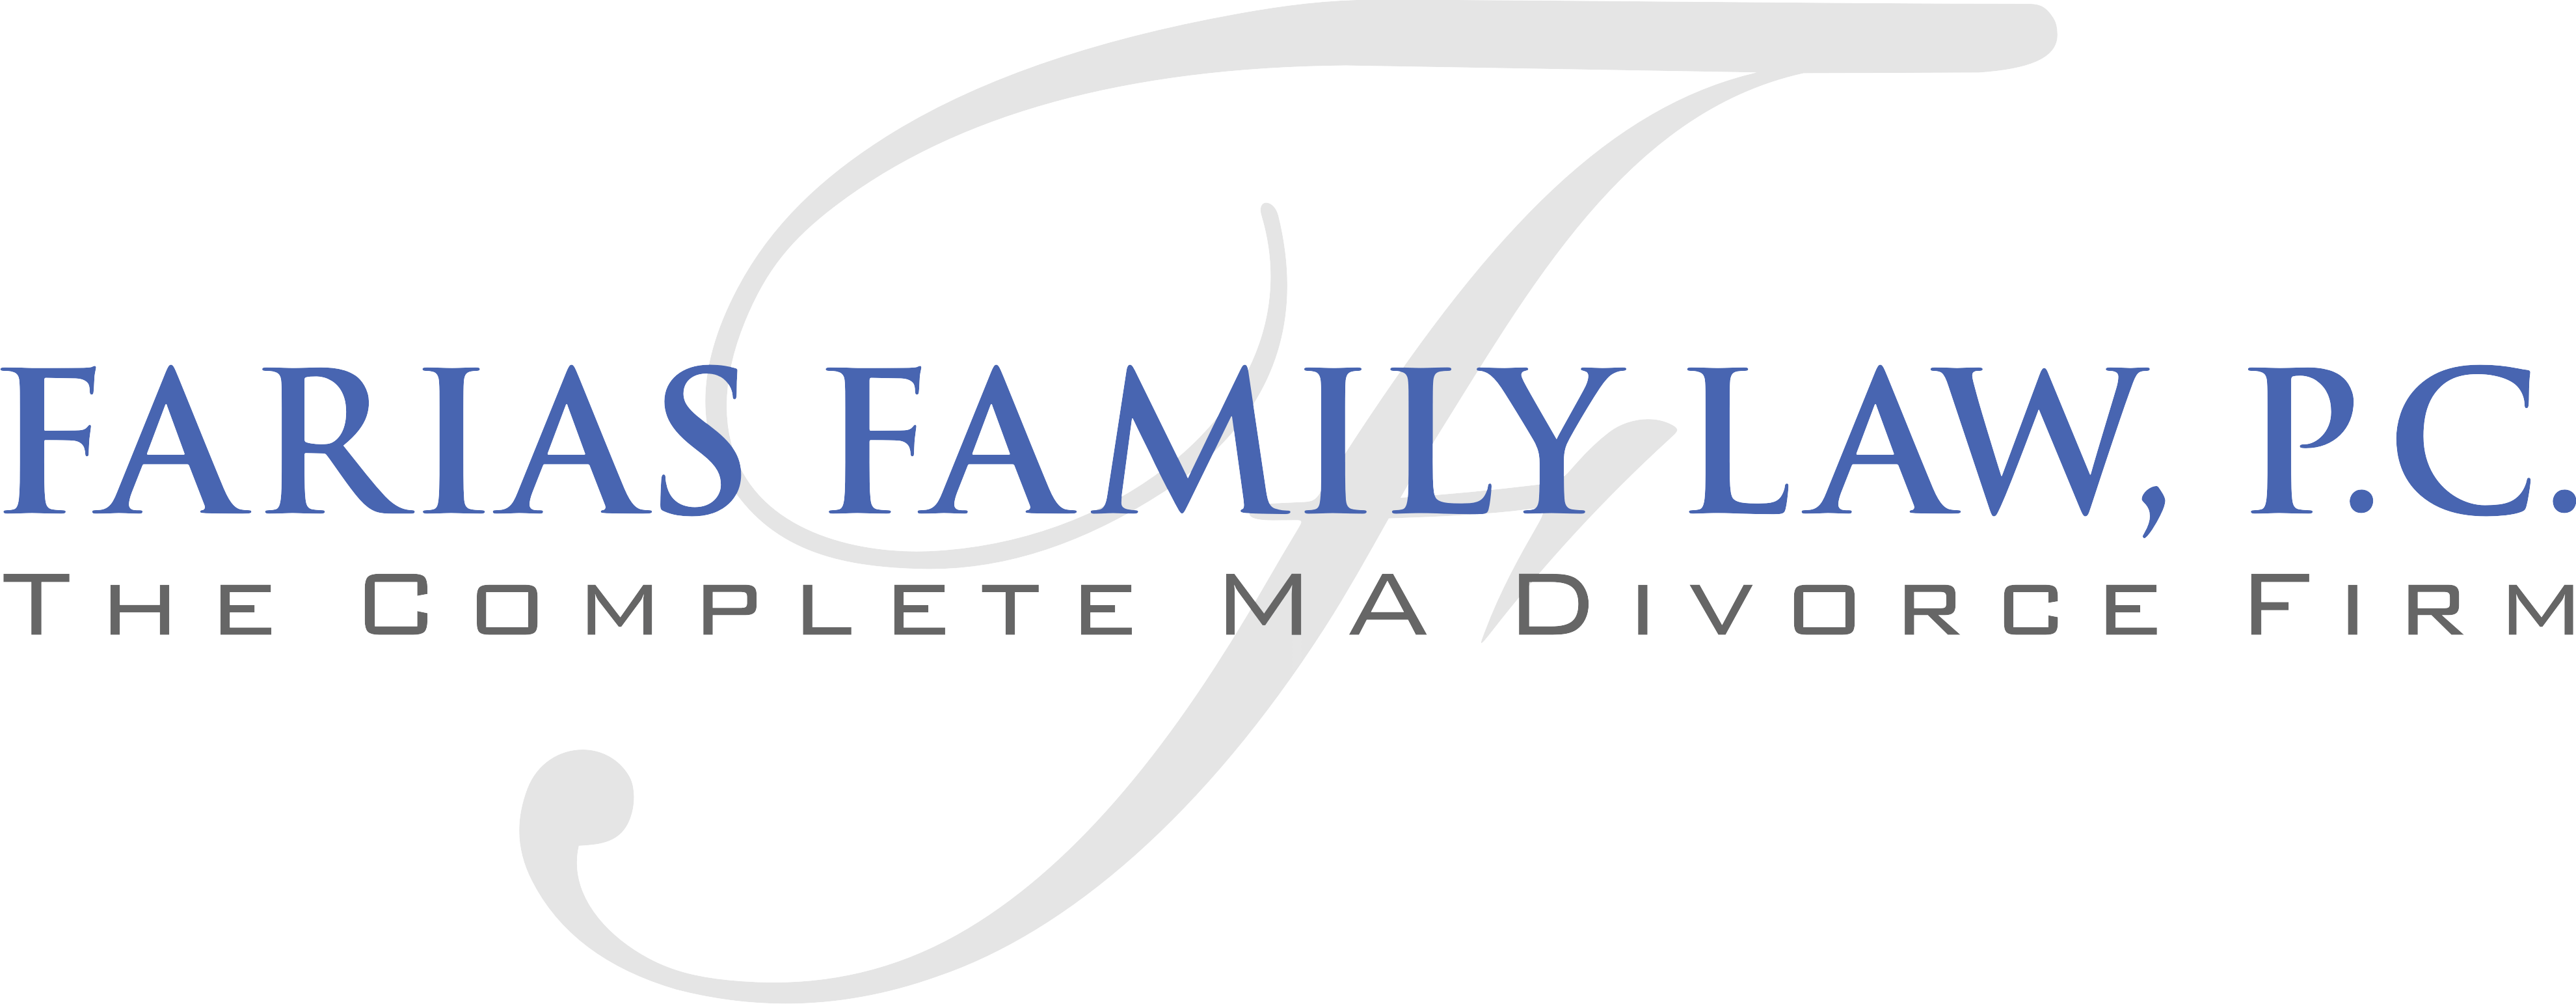 Bill Farias, Divorce lawyer Serving Fall River & Easton Massachusetts